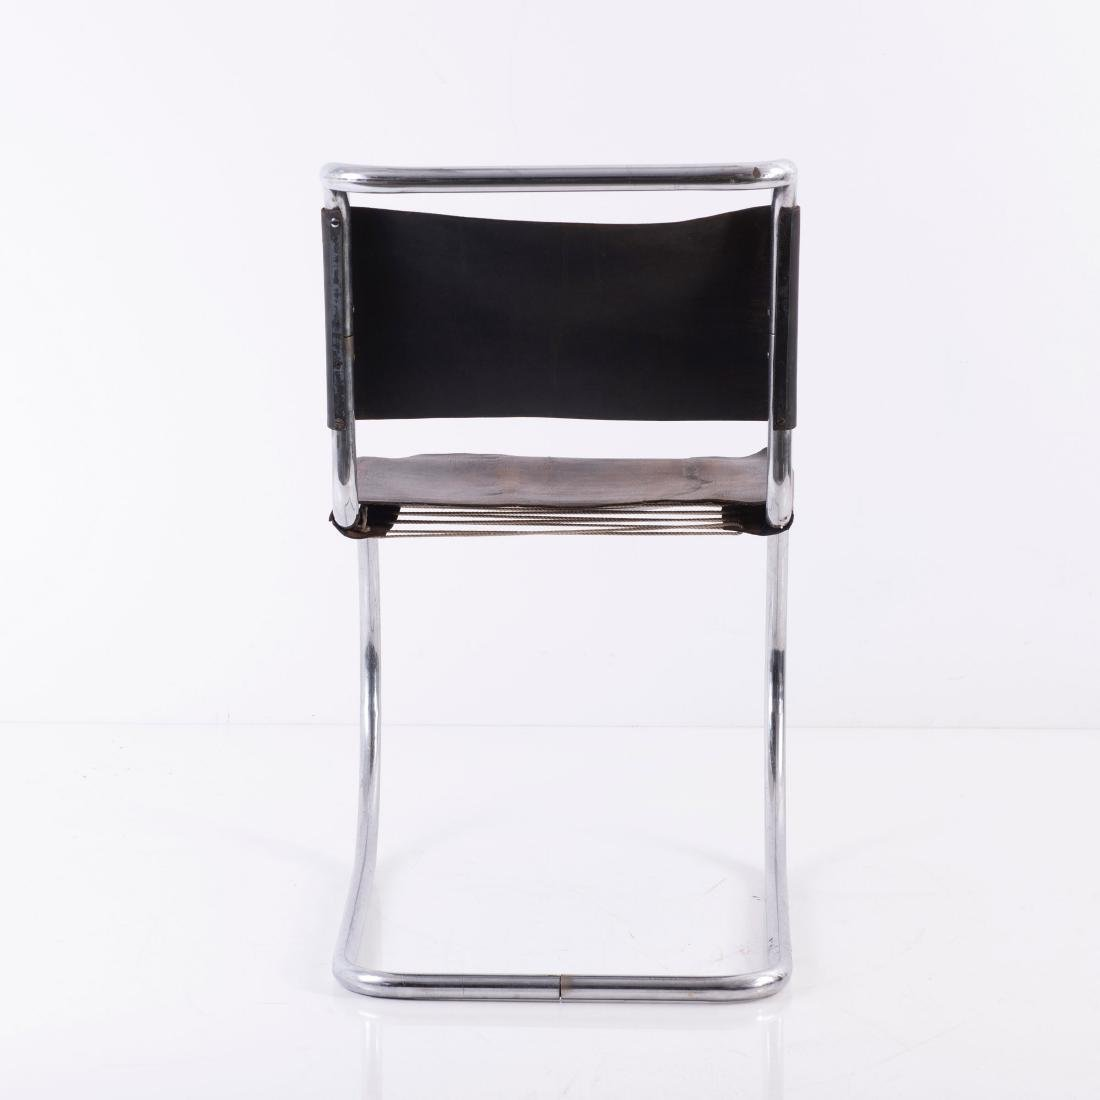 'MR 10' - 'Weissenhof' cantilever chair, 1927 - 3